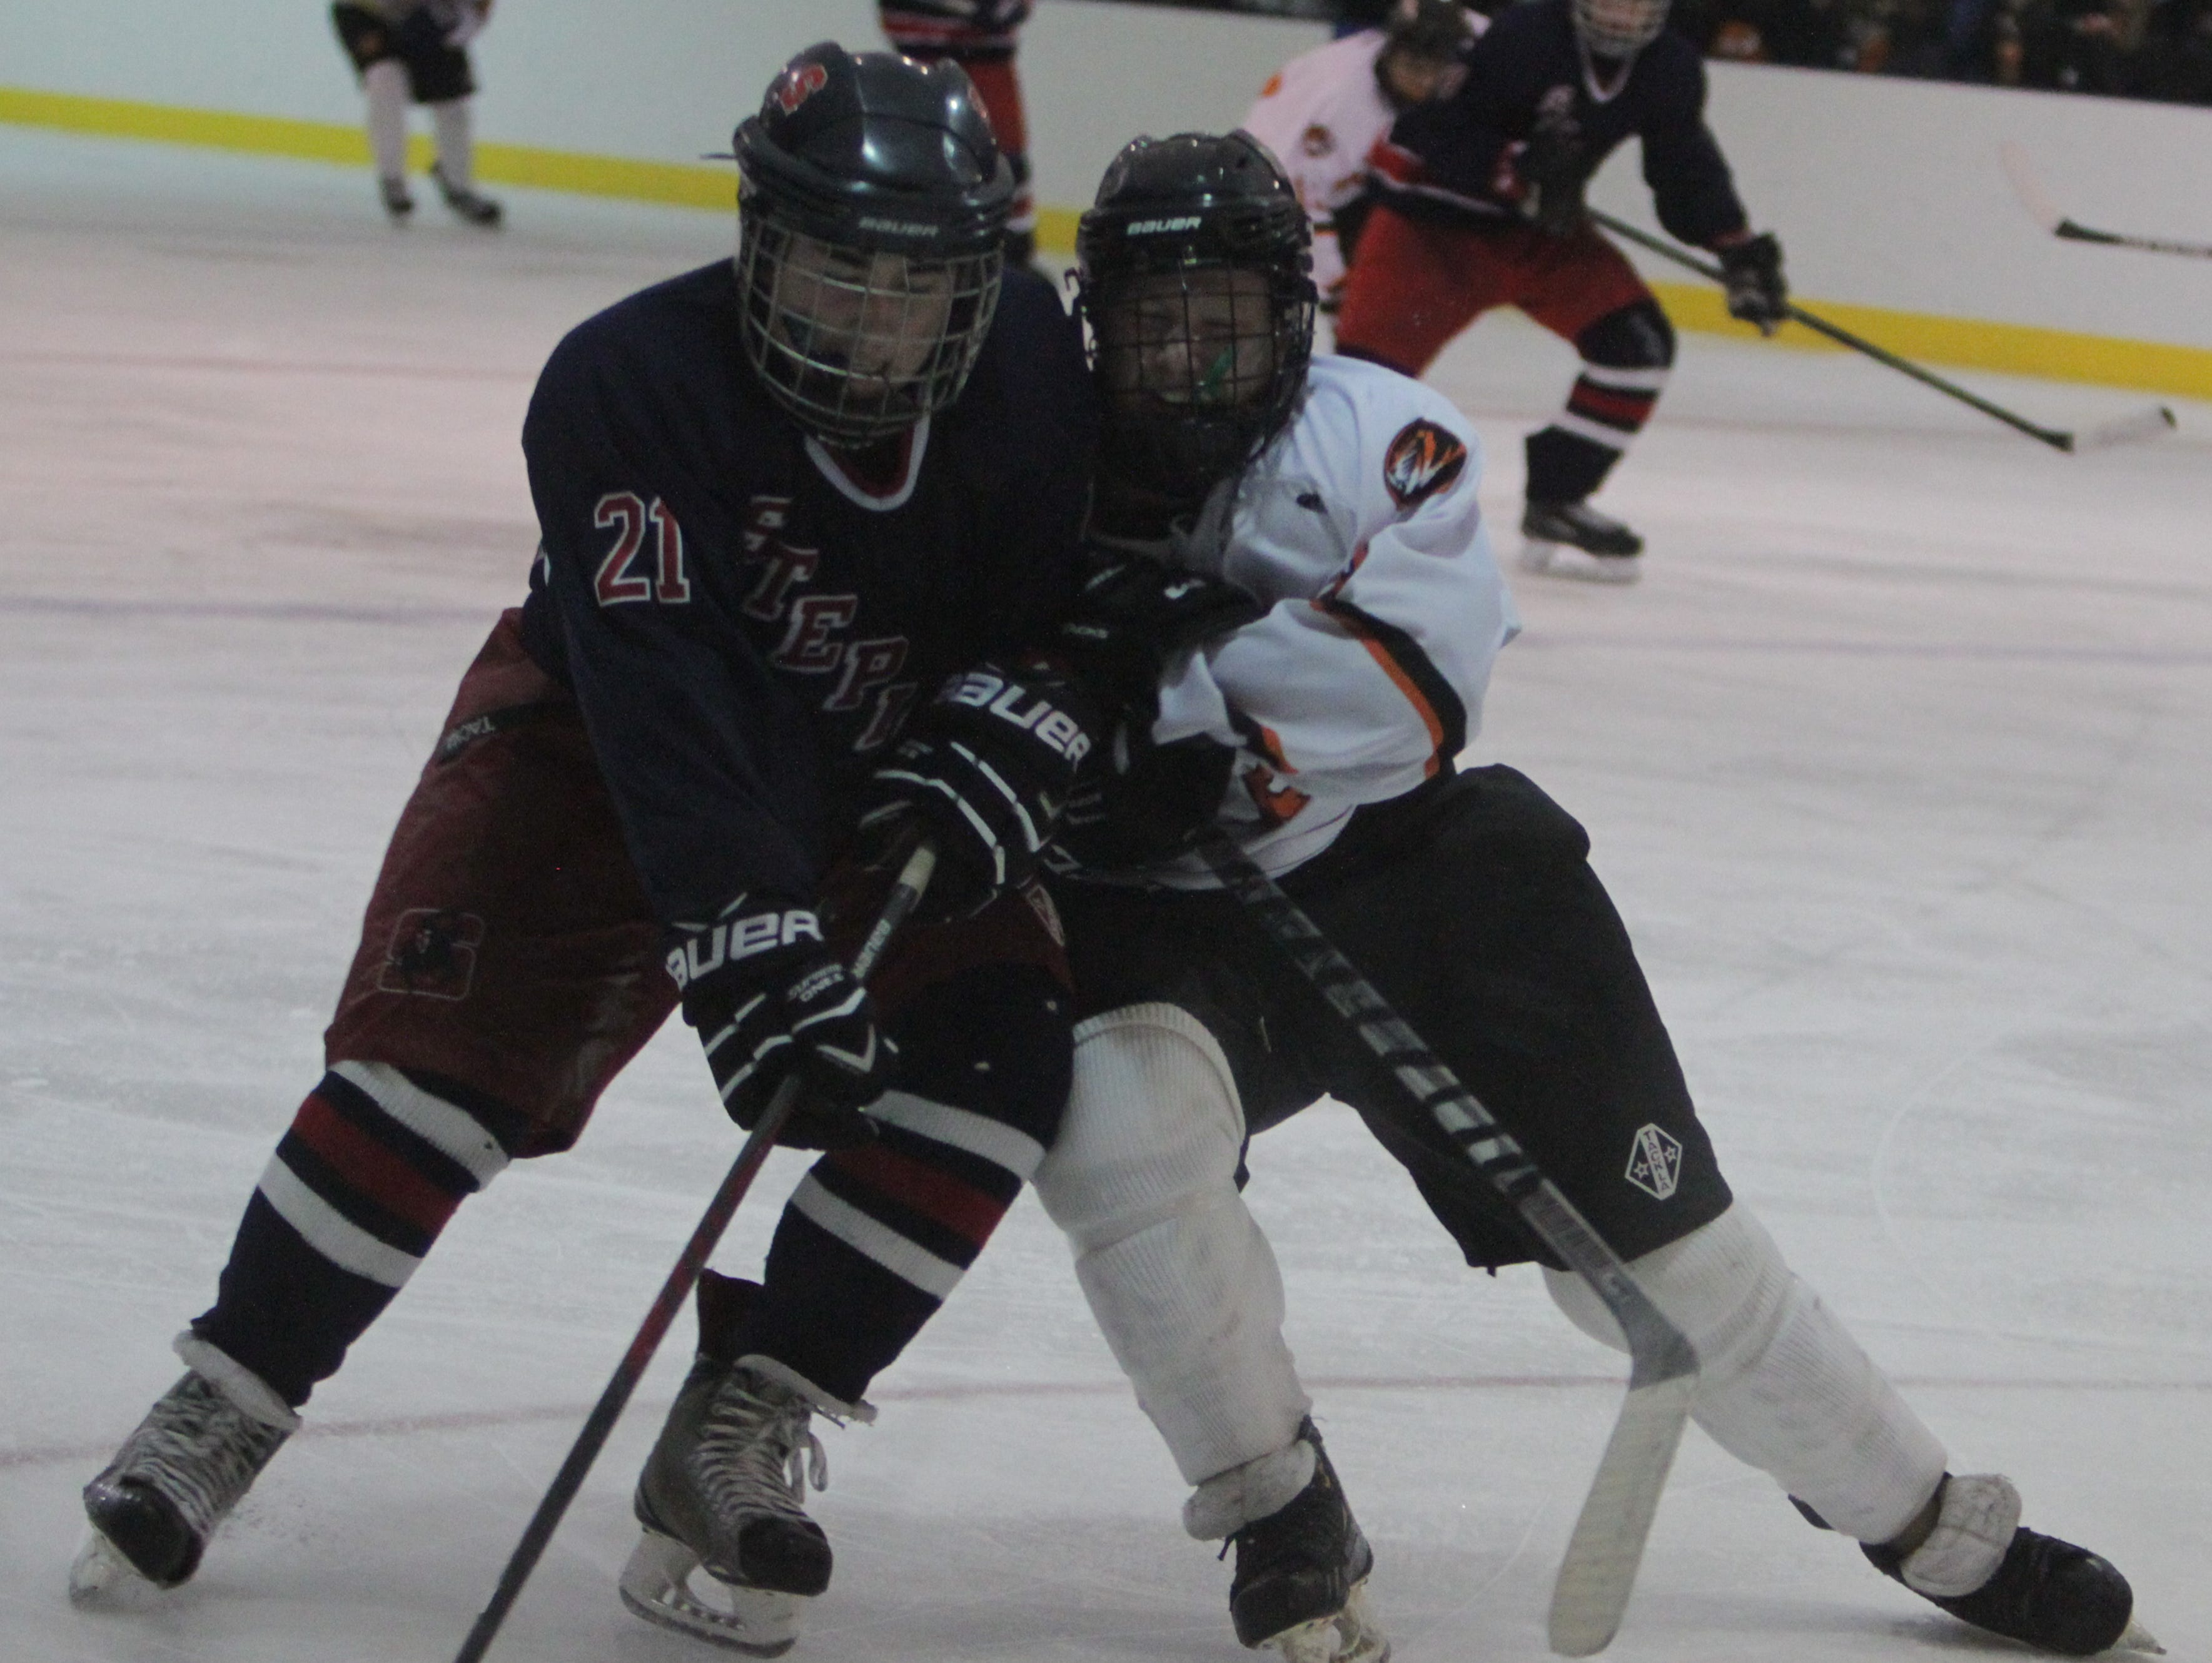 Stepinac's Brian Donovan (21) and White Plains' Liam Broderick battle for possession of the puck during the Guy Mathews Thanksgiving Invitational Hockey Tournament at the Ebersole Ice Rink on Saturday, November 28th, 2015. Stepinac won 7-3.